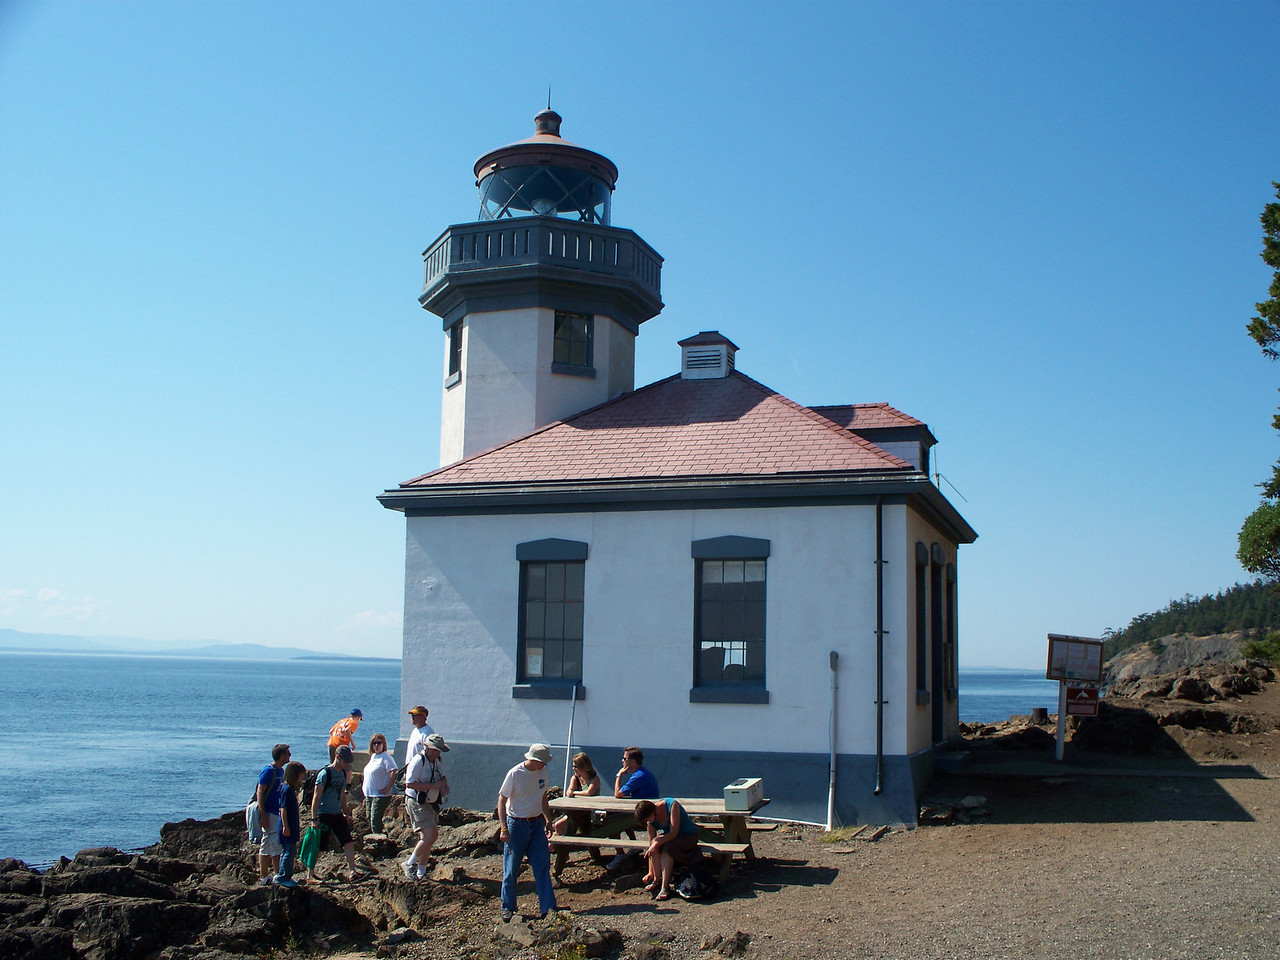 We drove to Lime Kiln Park on the west side of San Juan Island.  Orcas (killer whales) are frequently seen from this point, but we didn't see any whales.  This is the lighthouse.  (photo by Sonia)